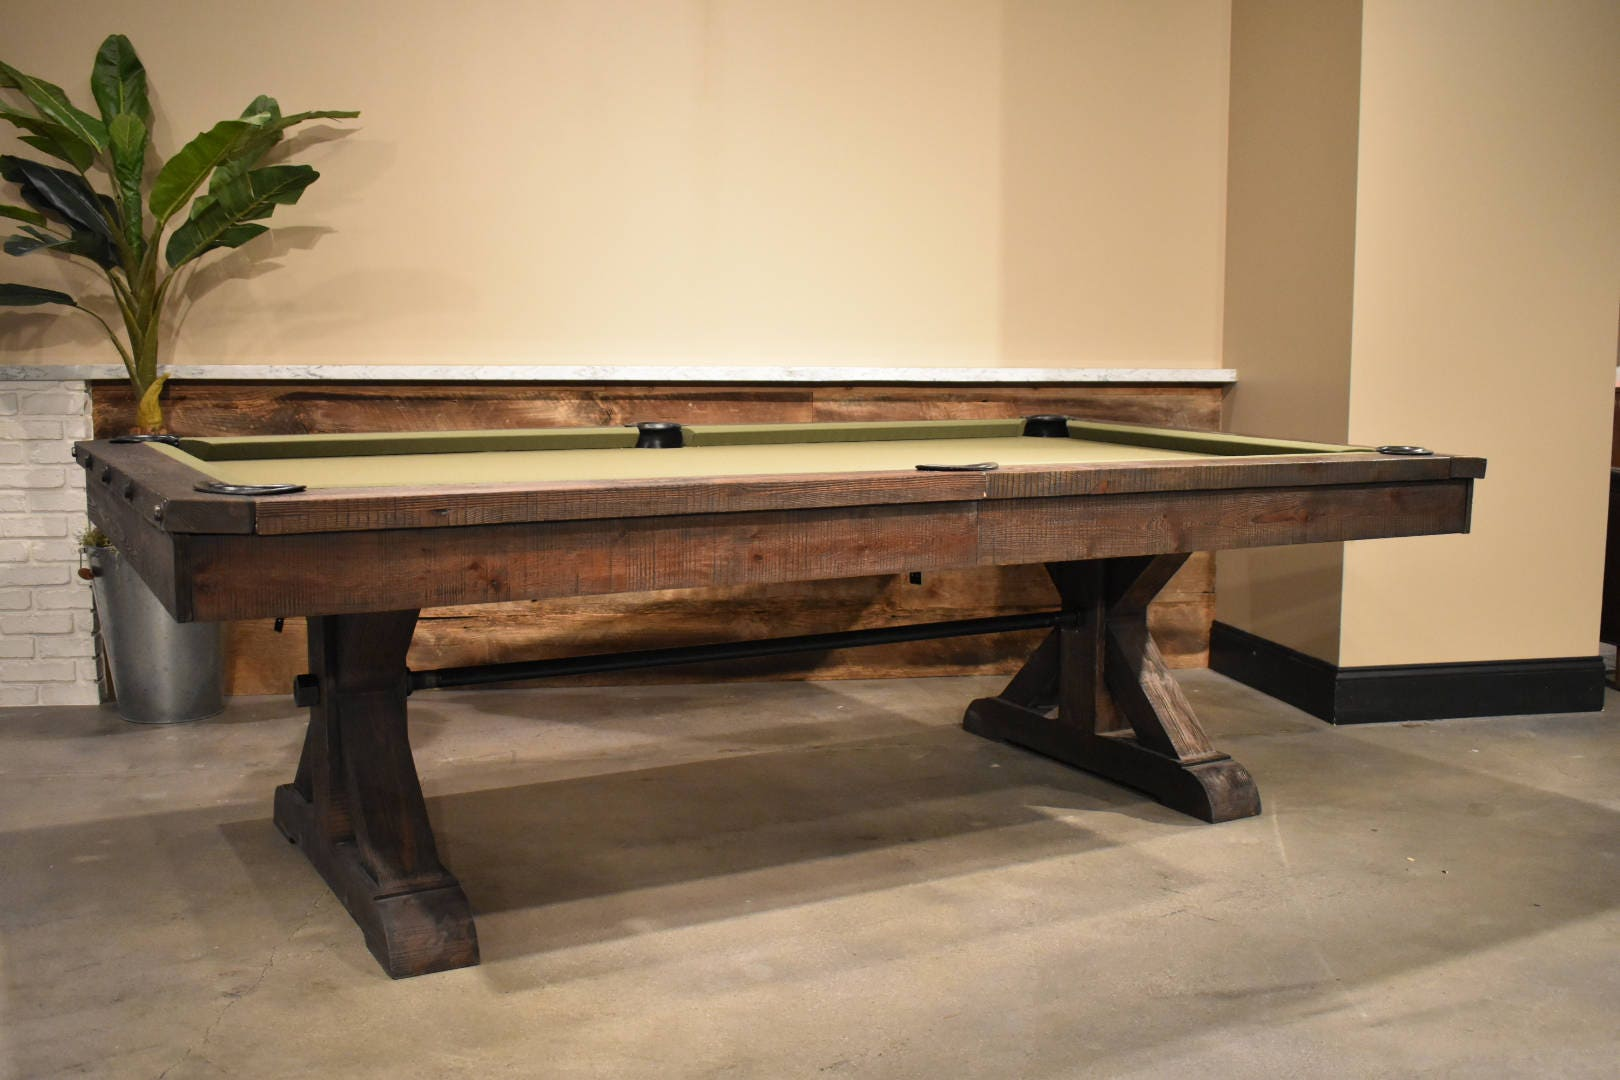 Restoration Hardware Inspired Pool TableRustic Otis Pool Table - Restoration hardware pool table